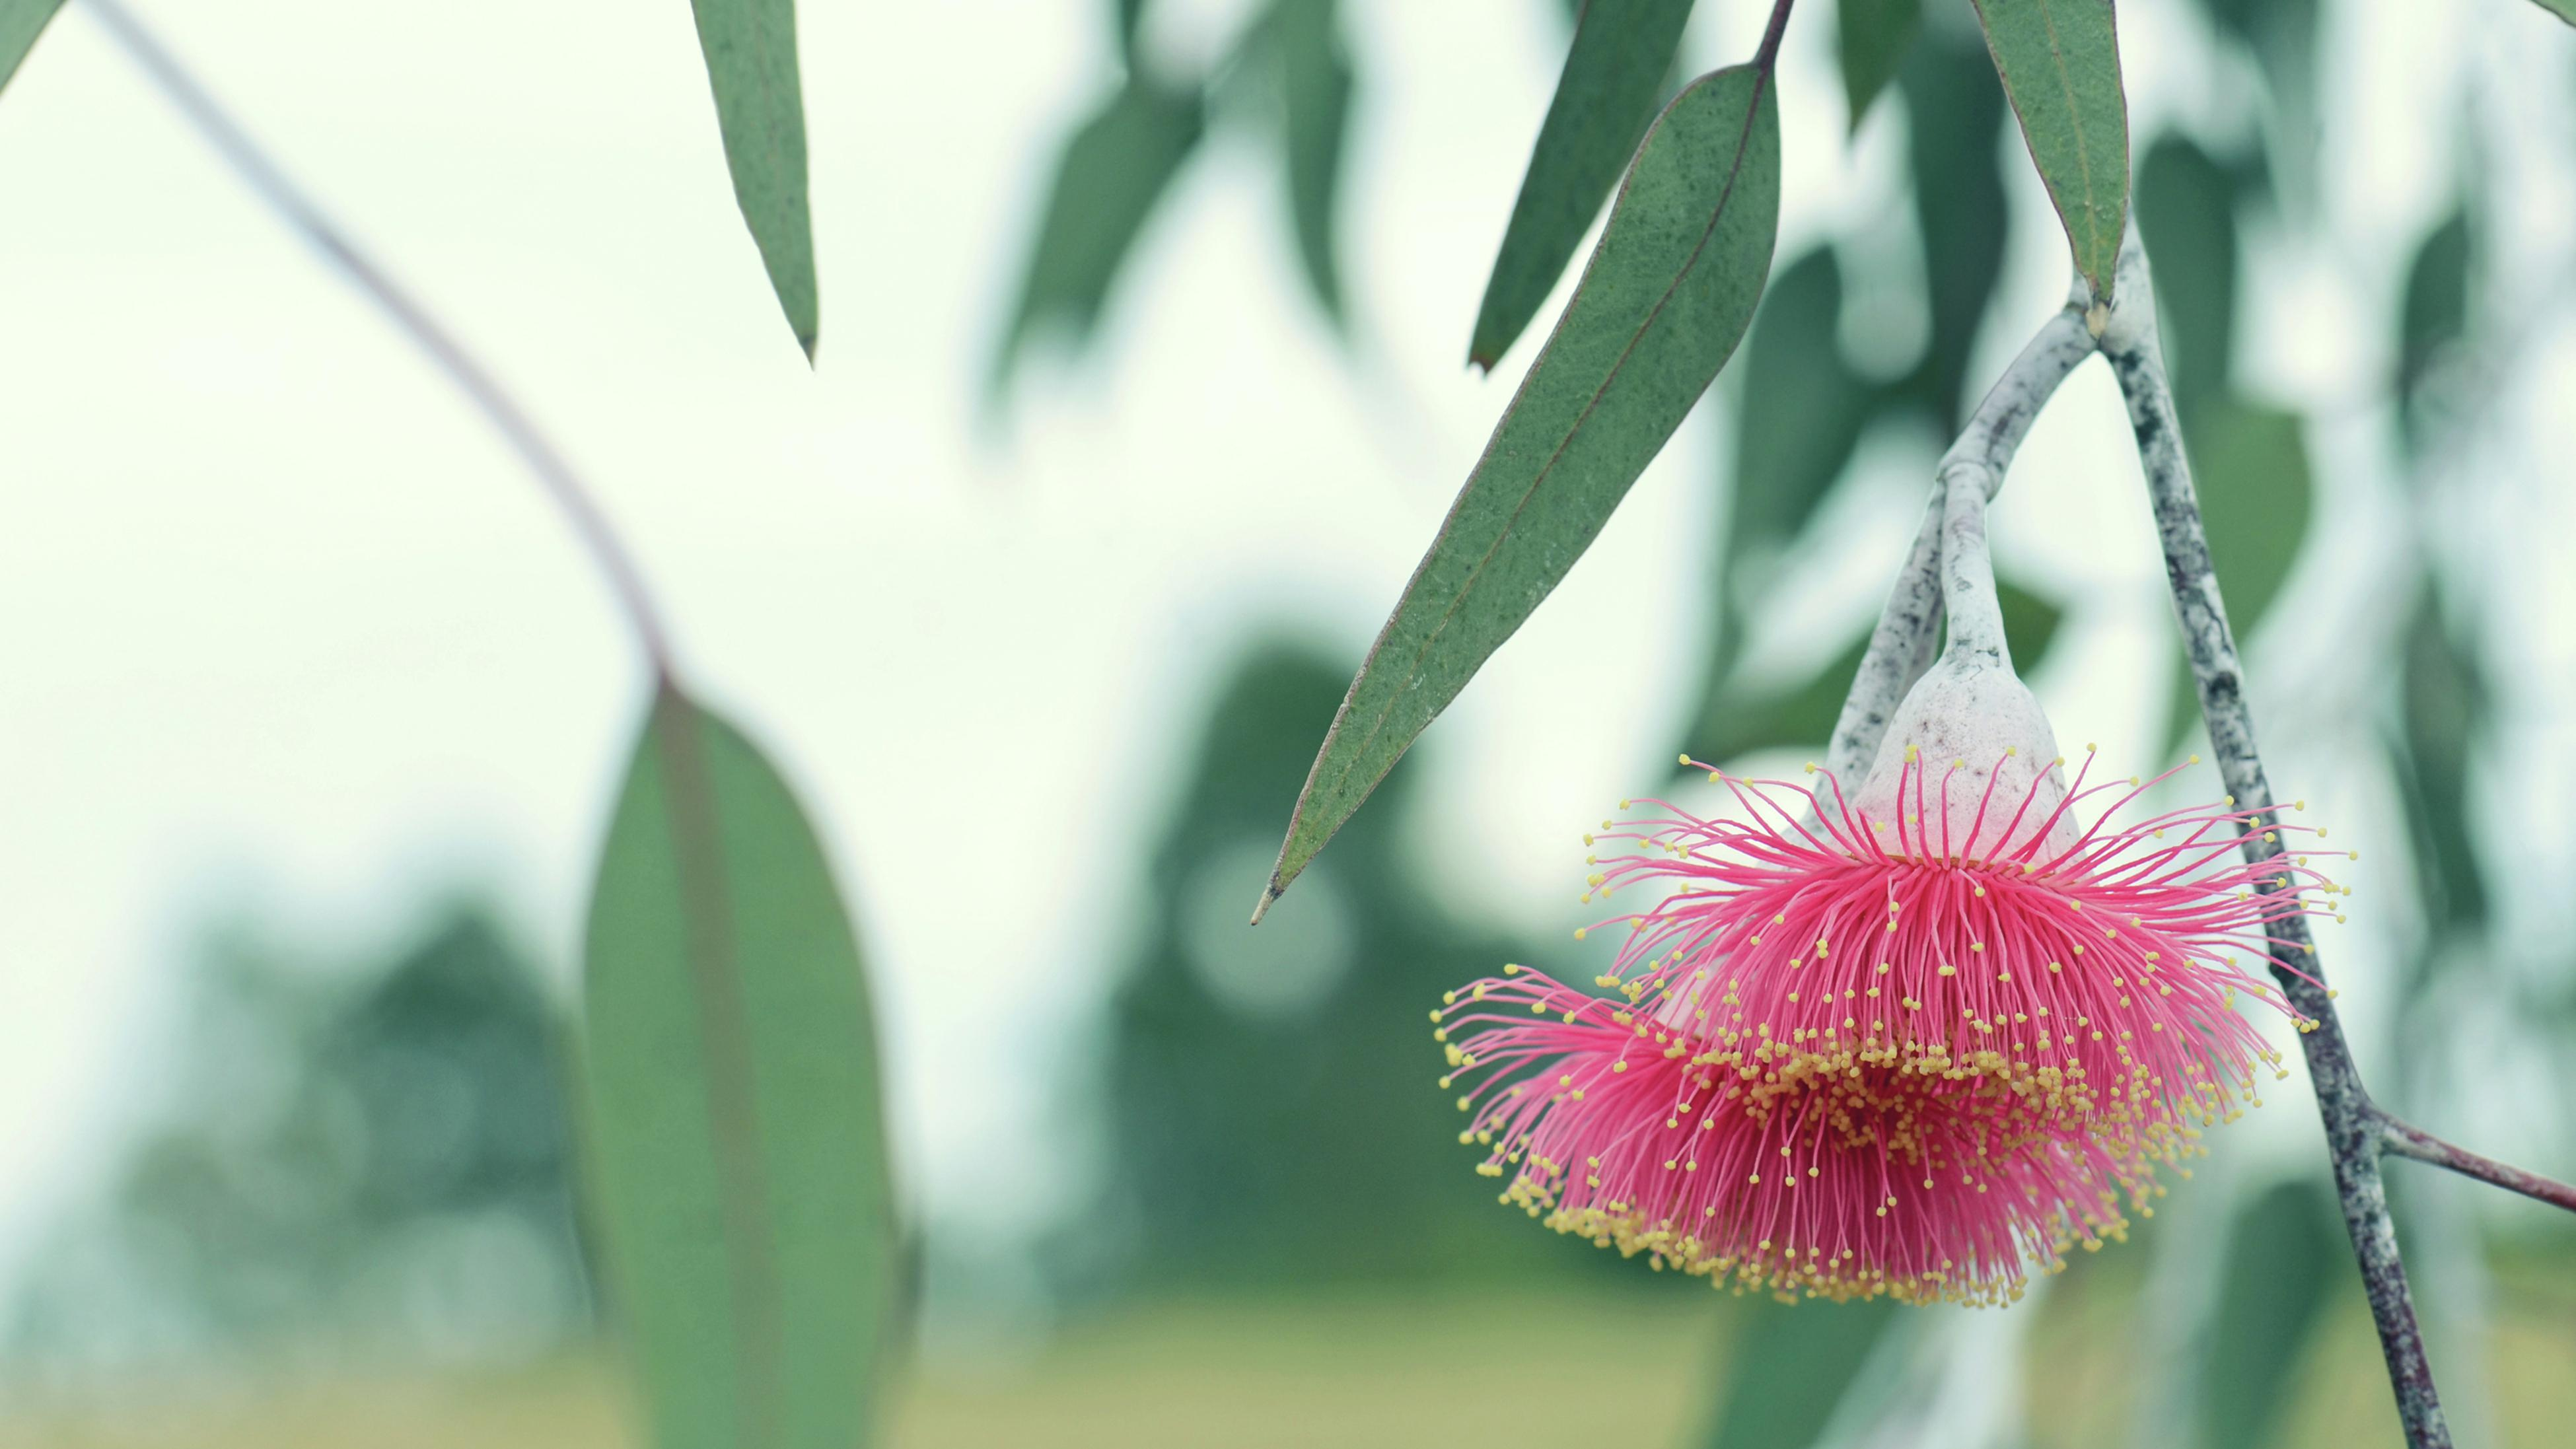 A pink flower and leaves on a gum (eucalyptus) tree